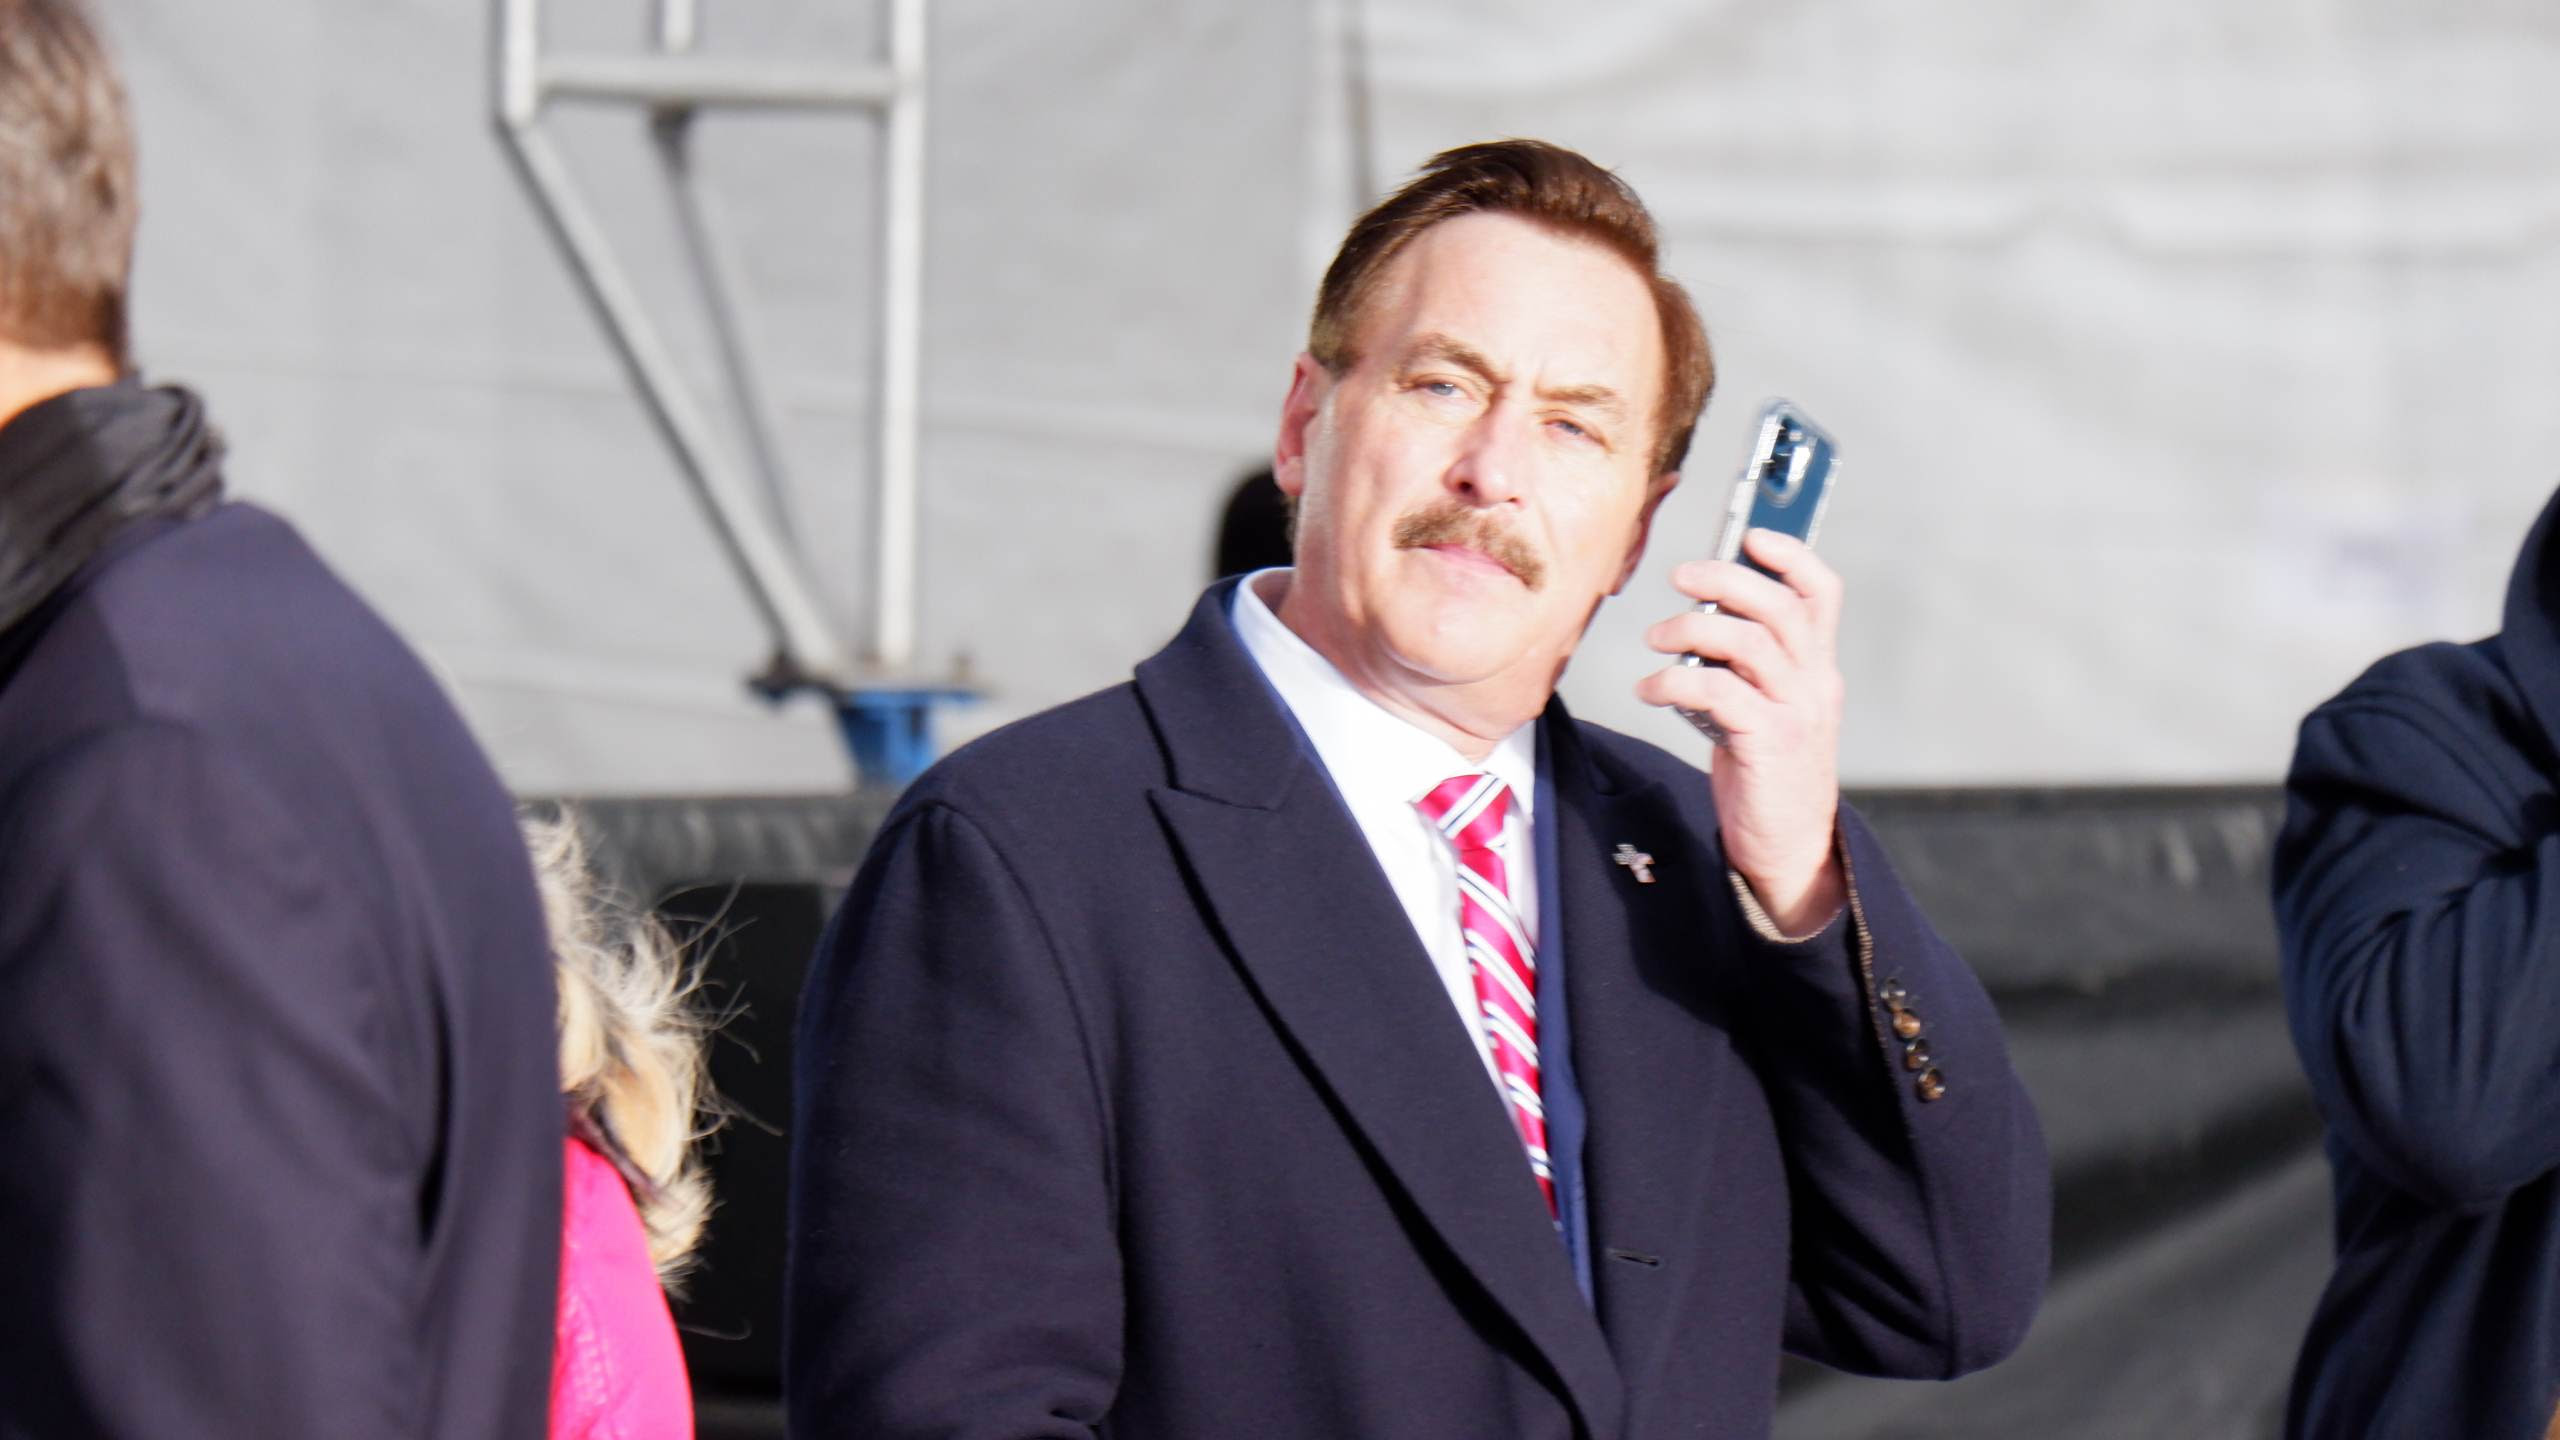 Dominion Voting Systems Sues Mike Lindell for $1.3 Billion DSCF4580-scaled